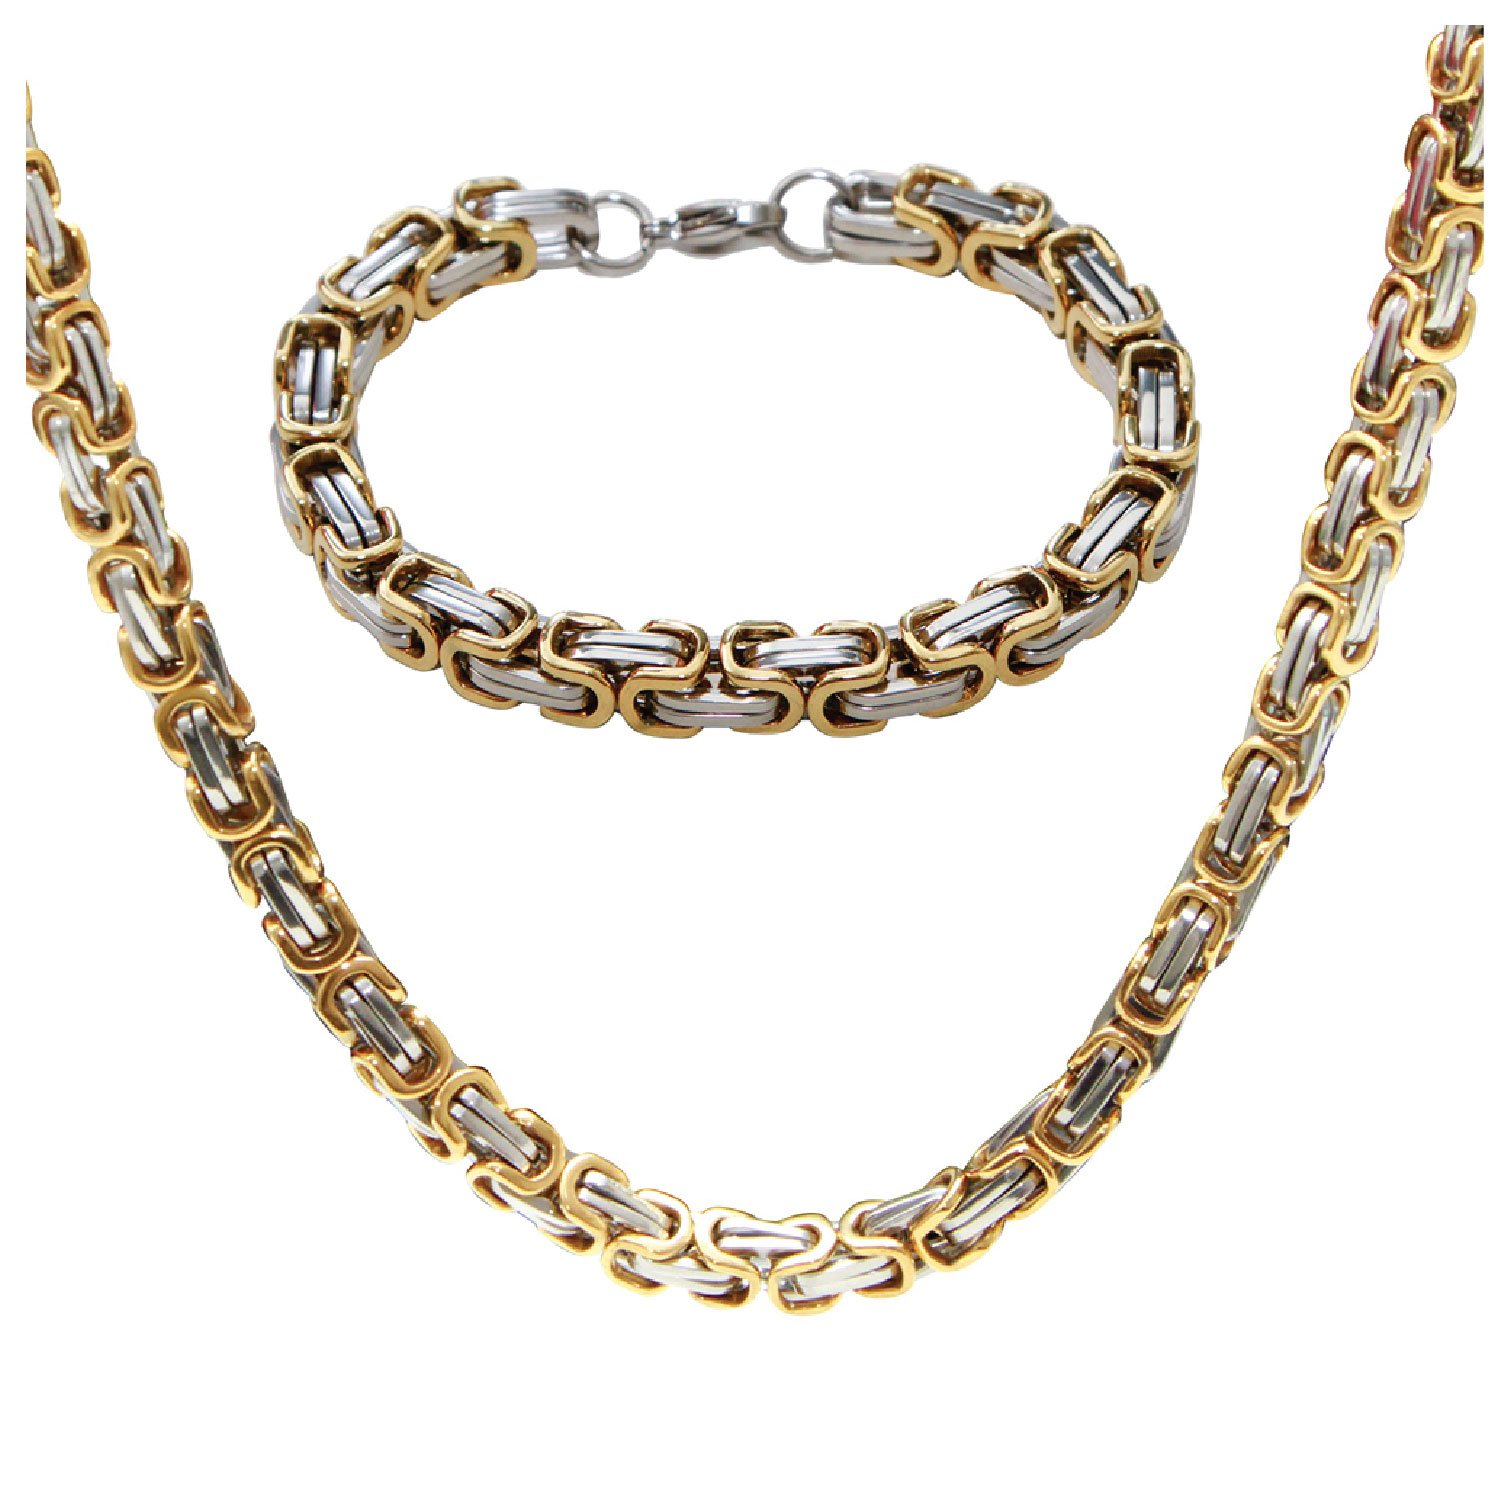 06db49fe637ef BodyJ4You Men's Bracelet and Necklace Stainless Steel Byzantine Chain Link  Jewelry Set with Gift Box